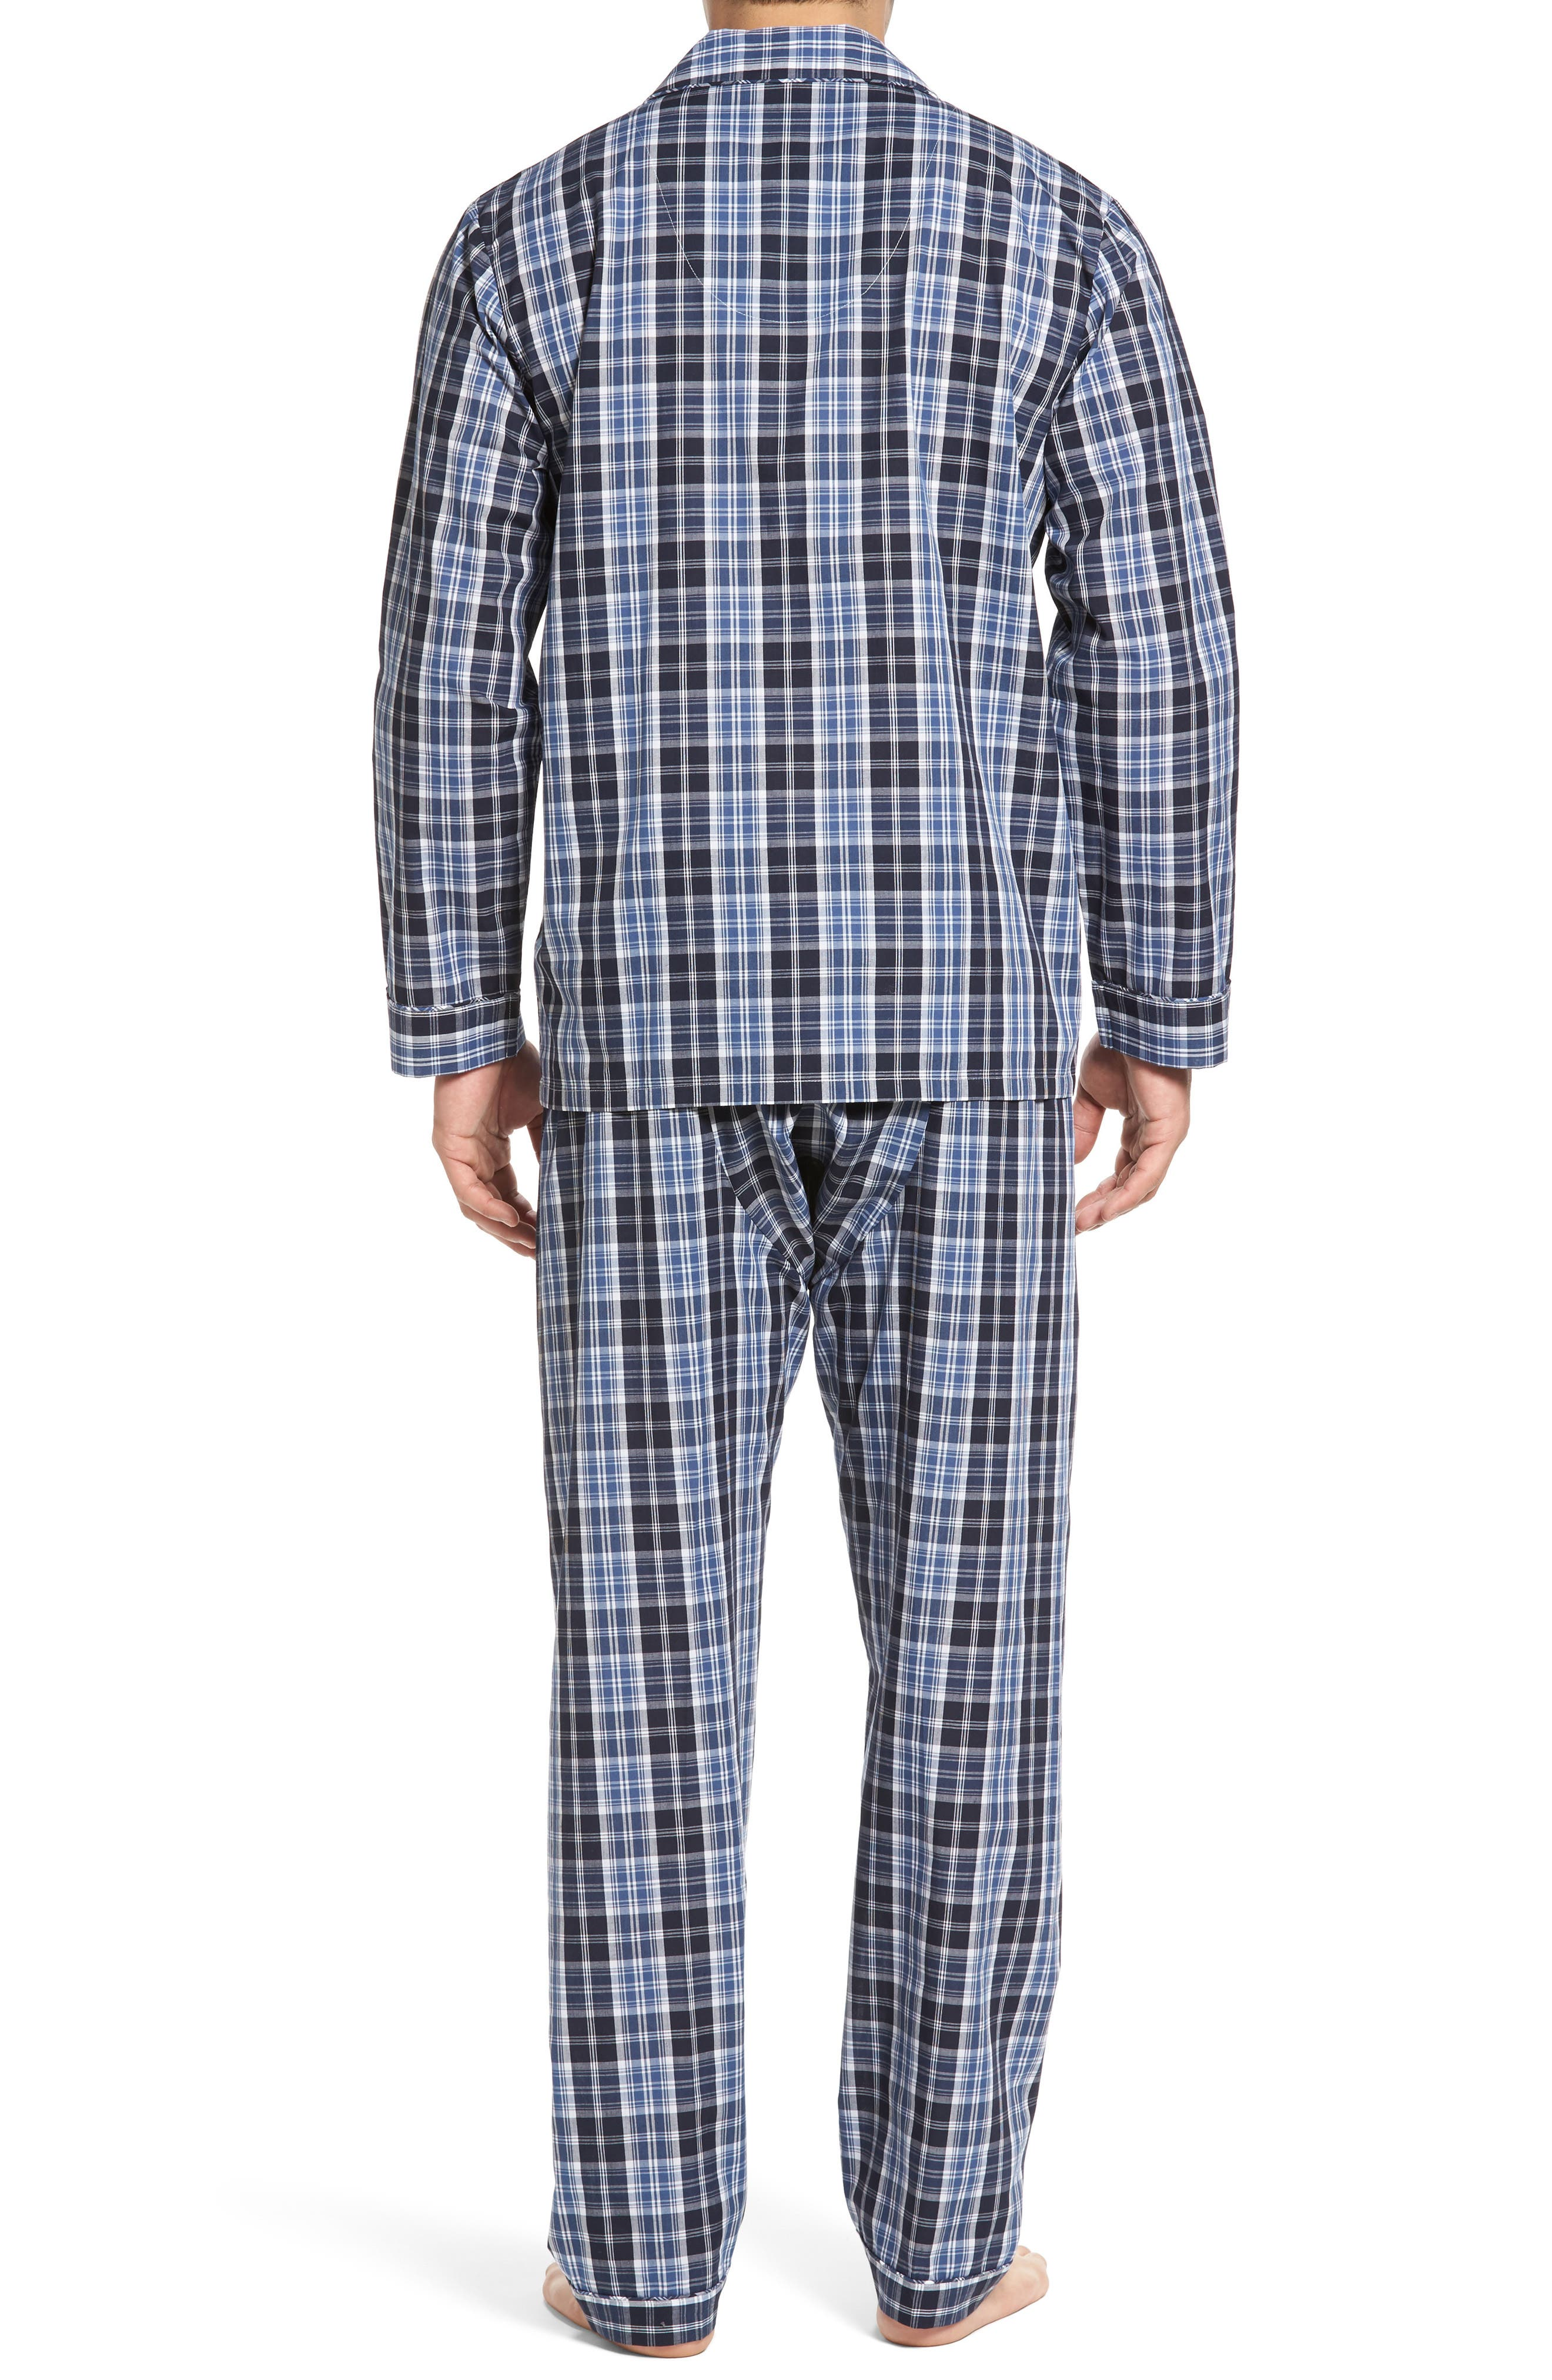 'Ryden' Cotton Blend Pajamas,                             Alternate thumbnail 2, color,                             001